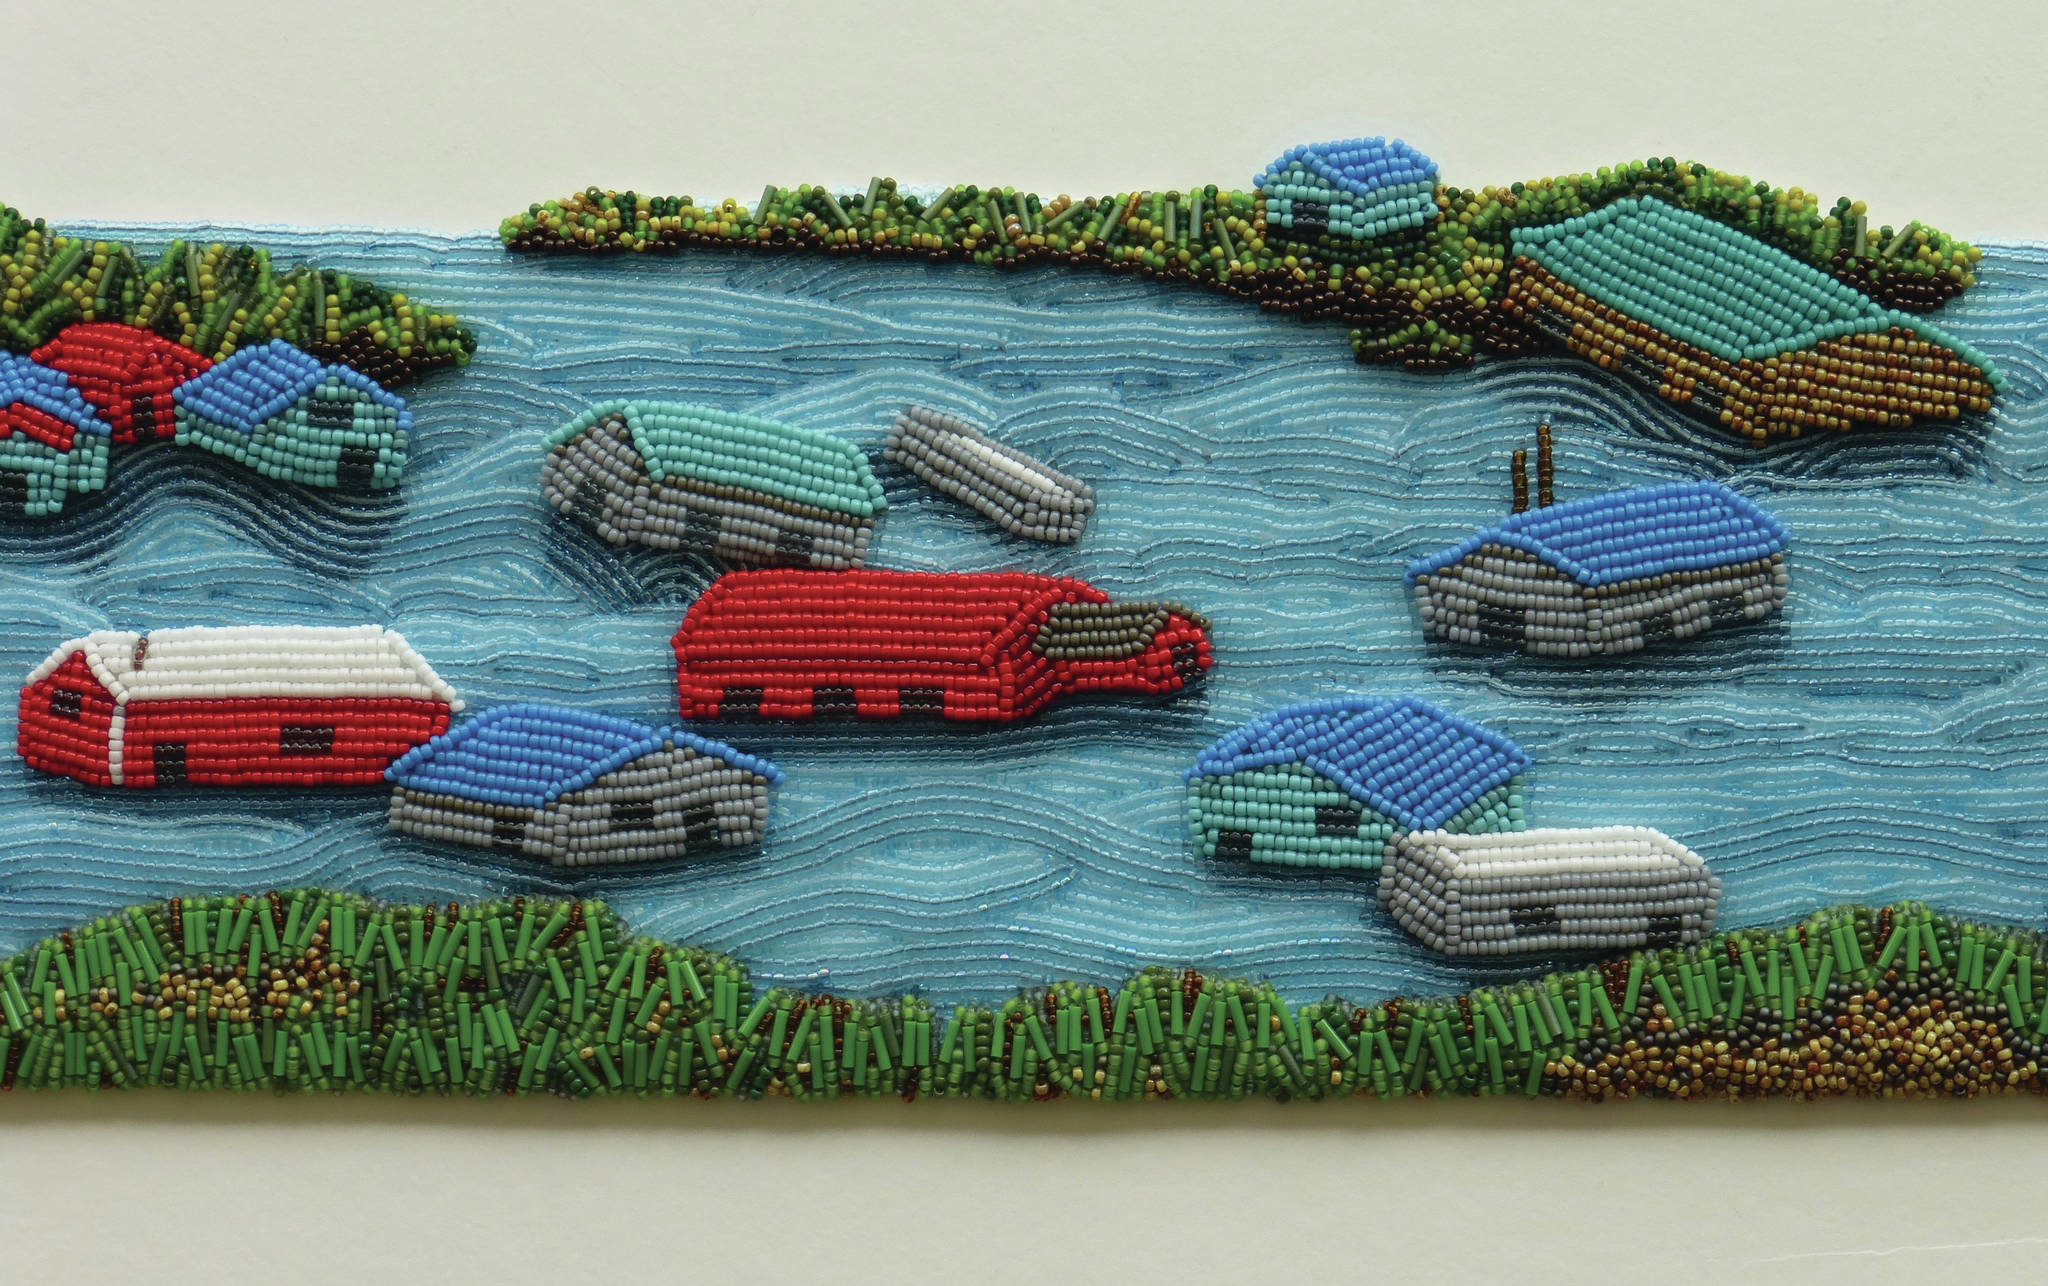 Beth Blankenship's bead work is part of the Circle of Protection exhibit opening Friday, Sept. 3, 2021, at Bunnell Street Arts Center in Homer, Alaska. (Photo courtesy of Bunnell Street Arts Center)